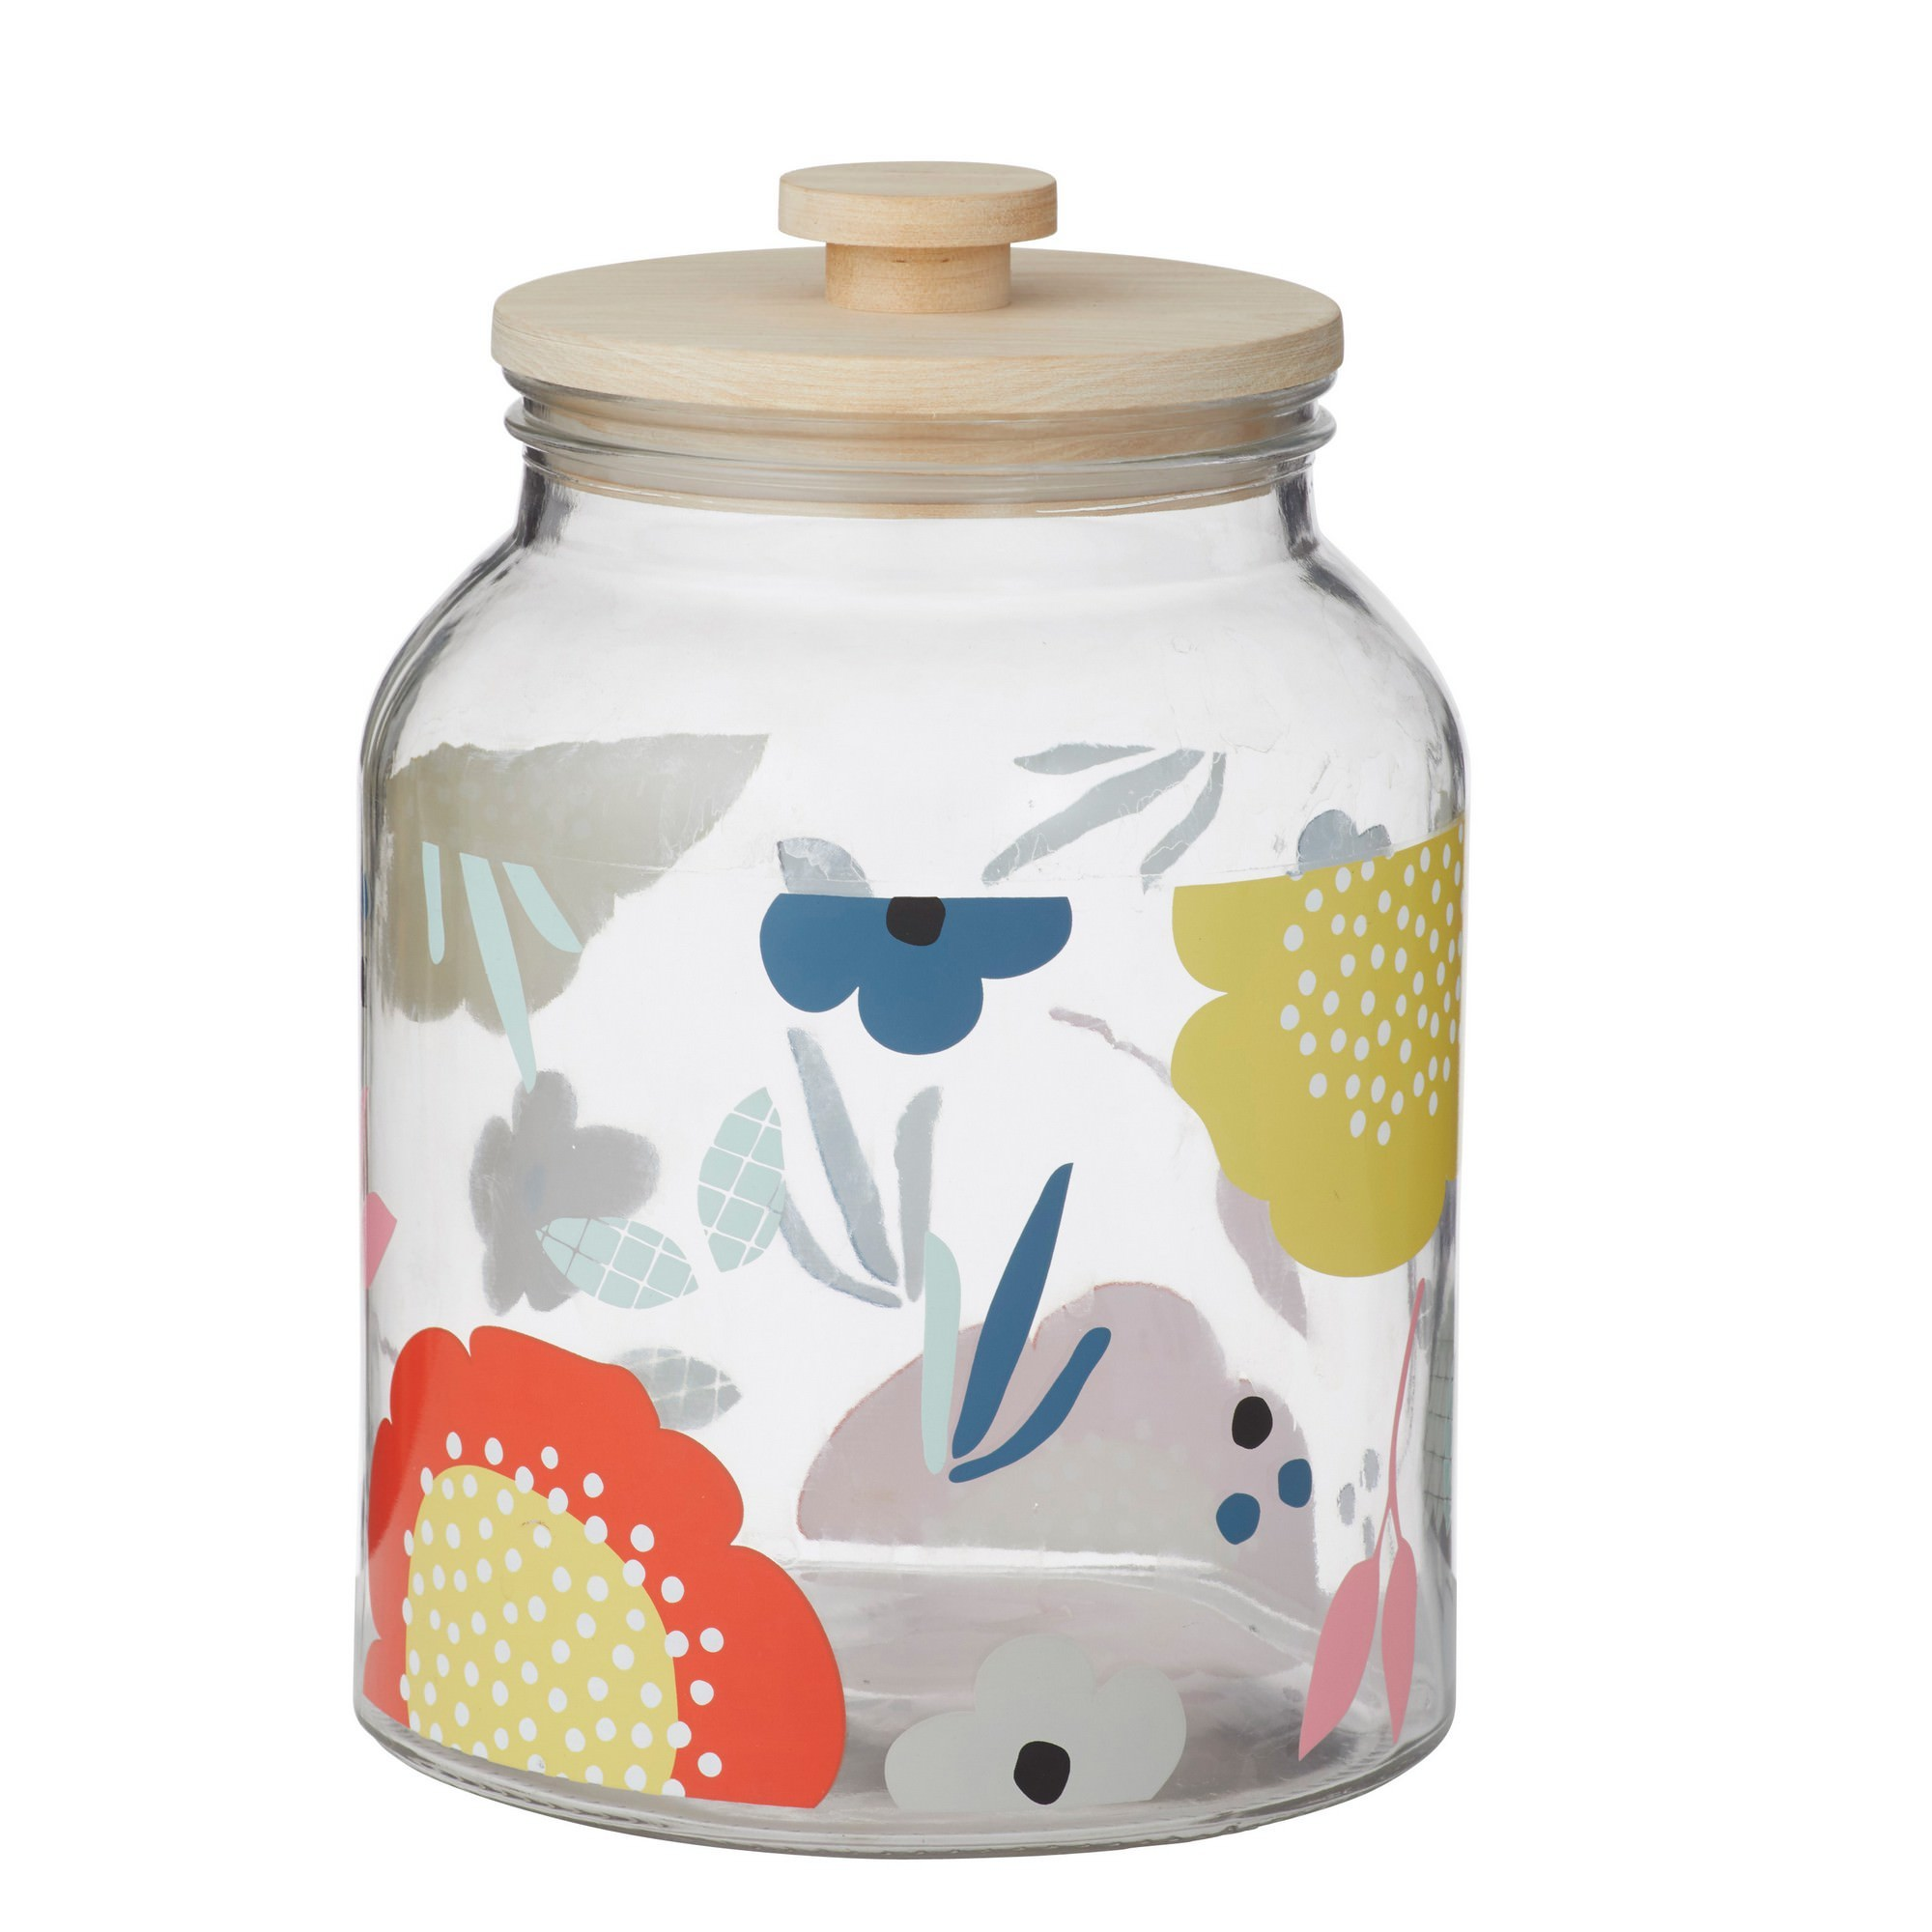 Anna Gare Elsie Glass Canister with Wooden Lid